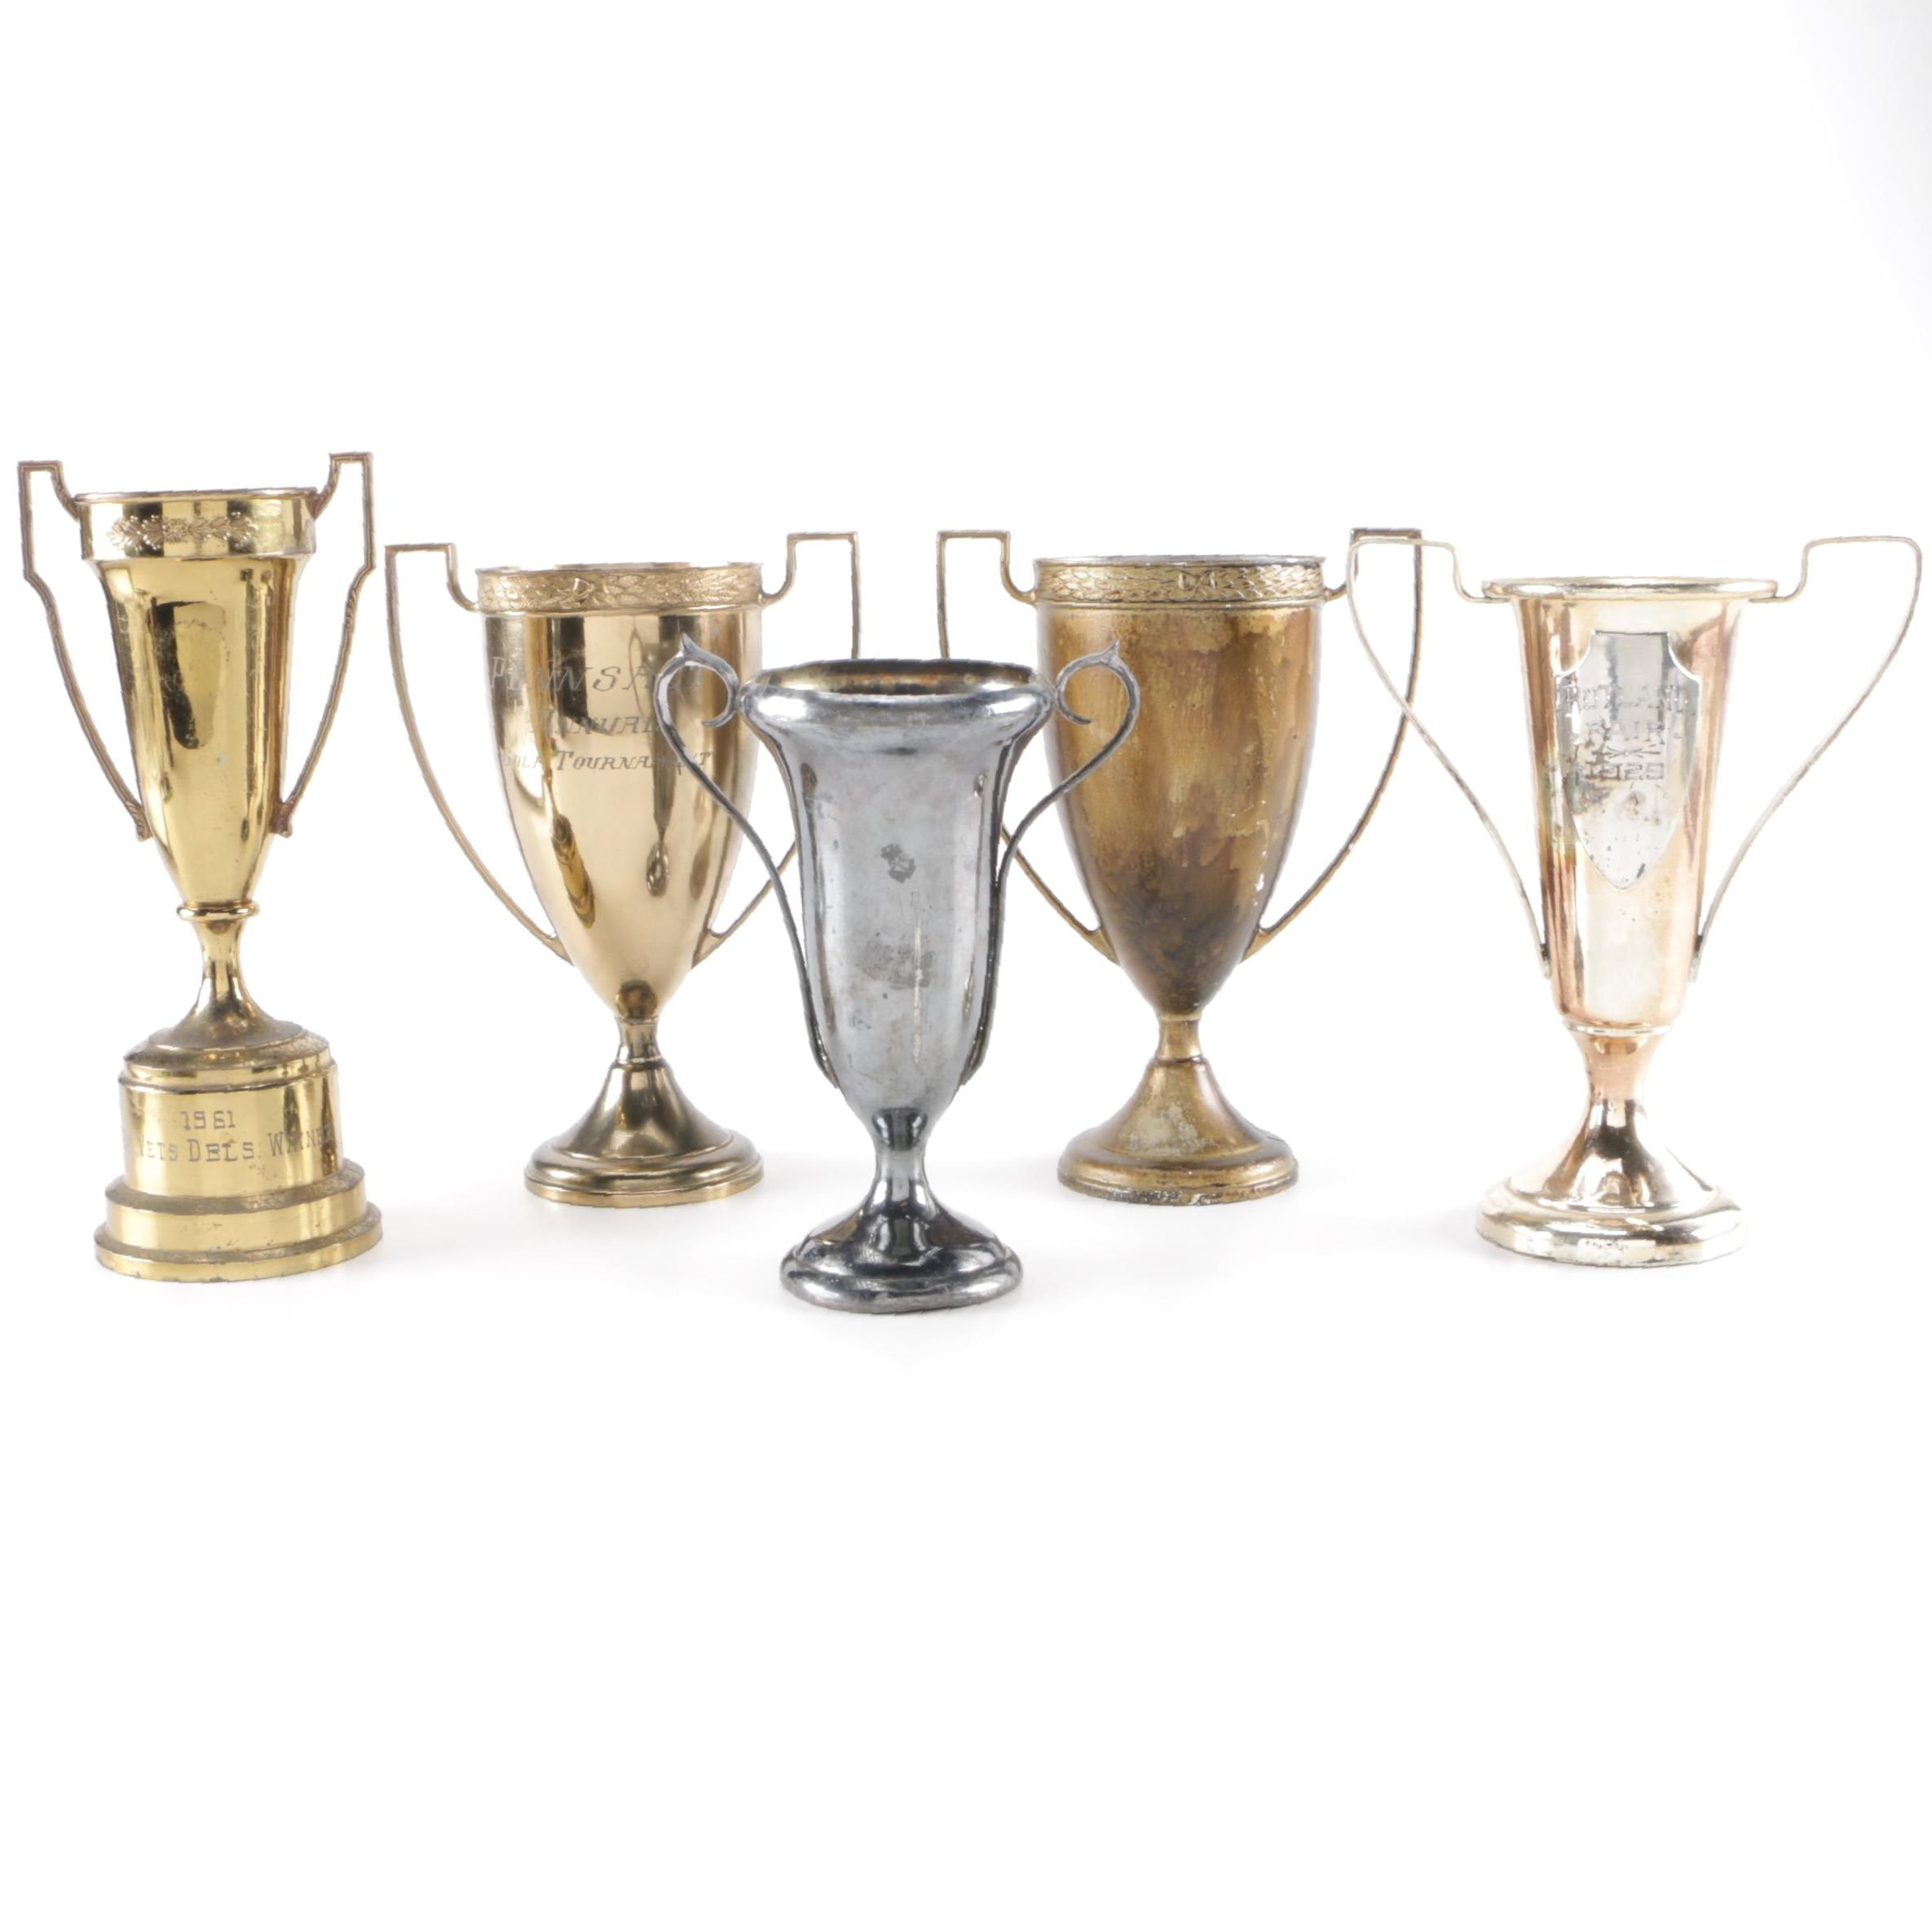 Five Brass and Base Metal Trophies